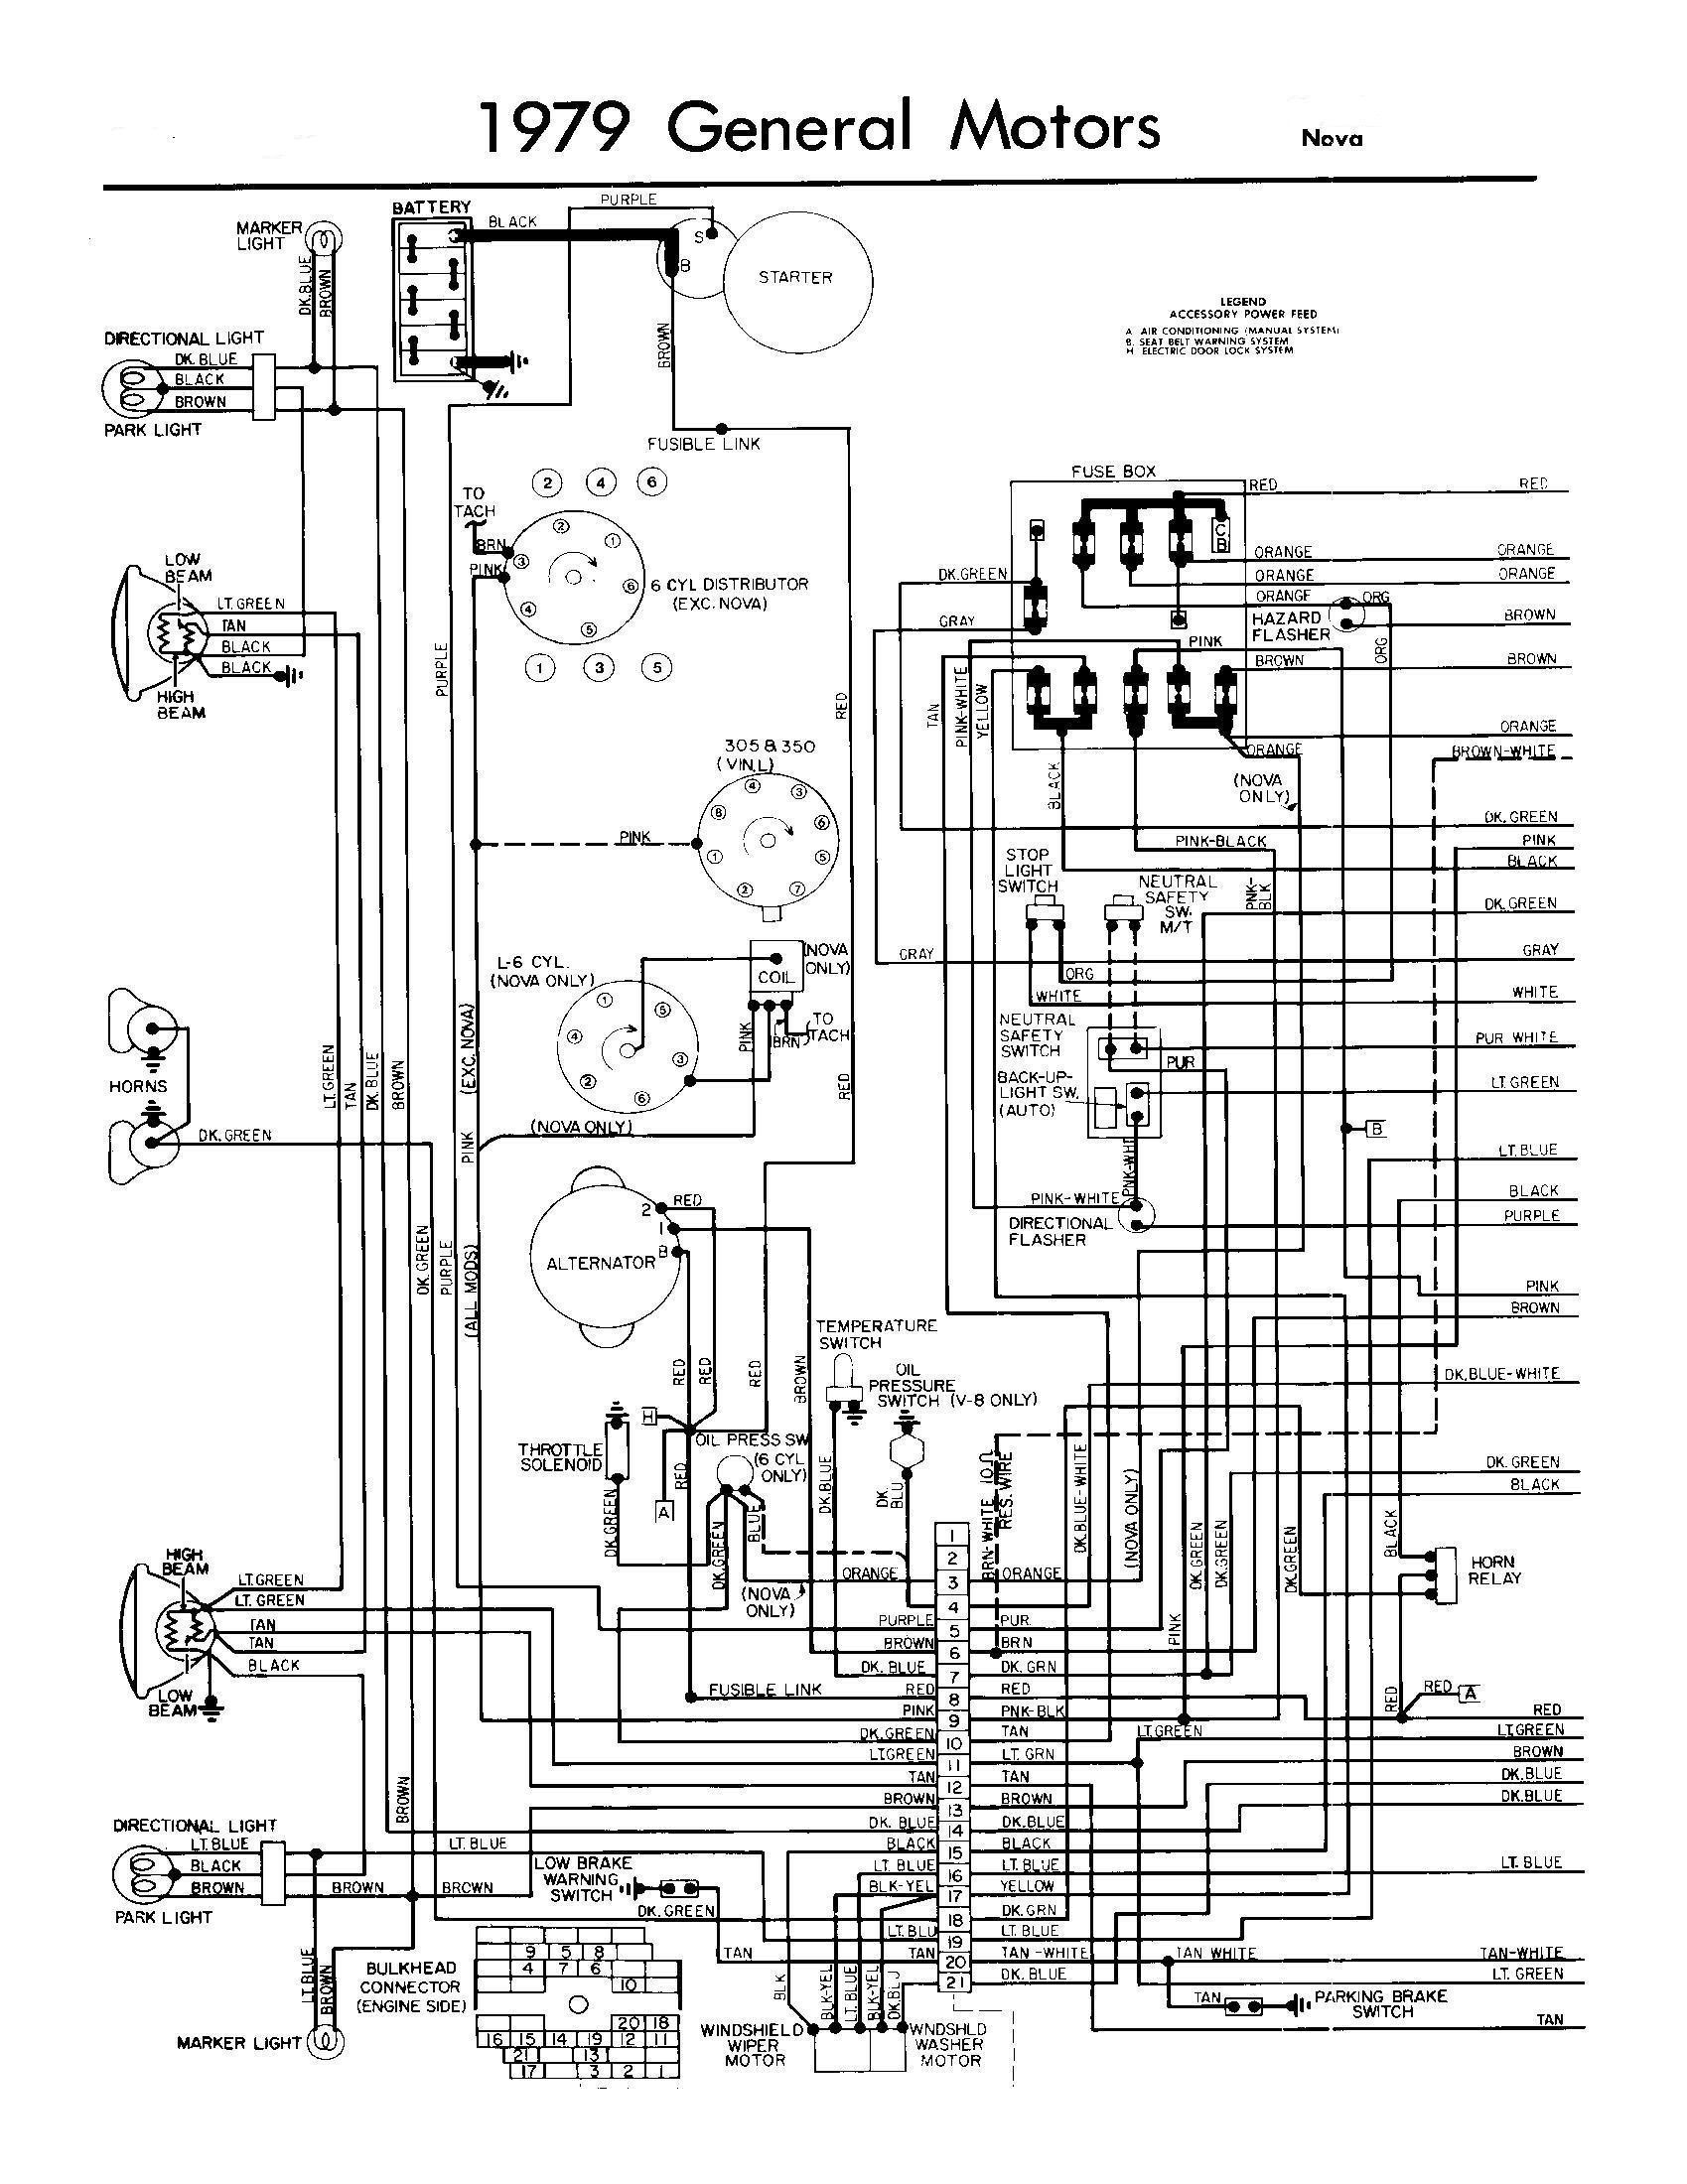 Wiring Diagram As Well Load Center Wiring Diagram On Home Wiring